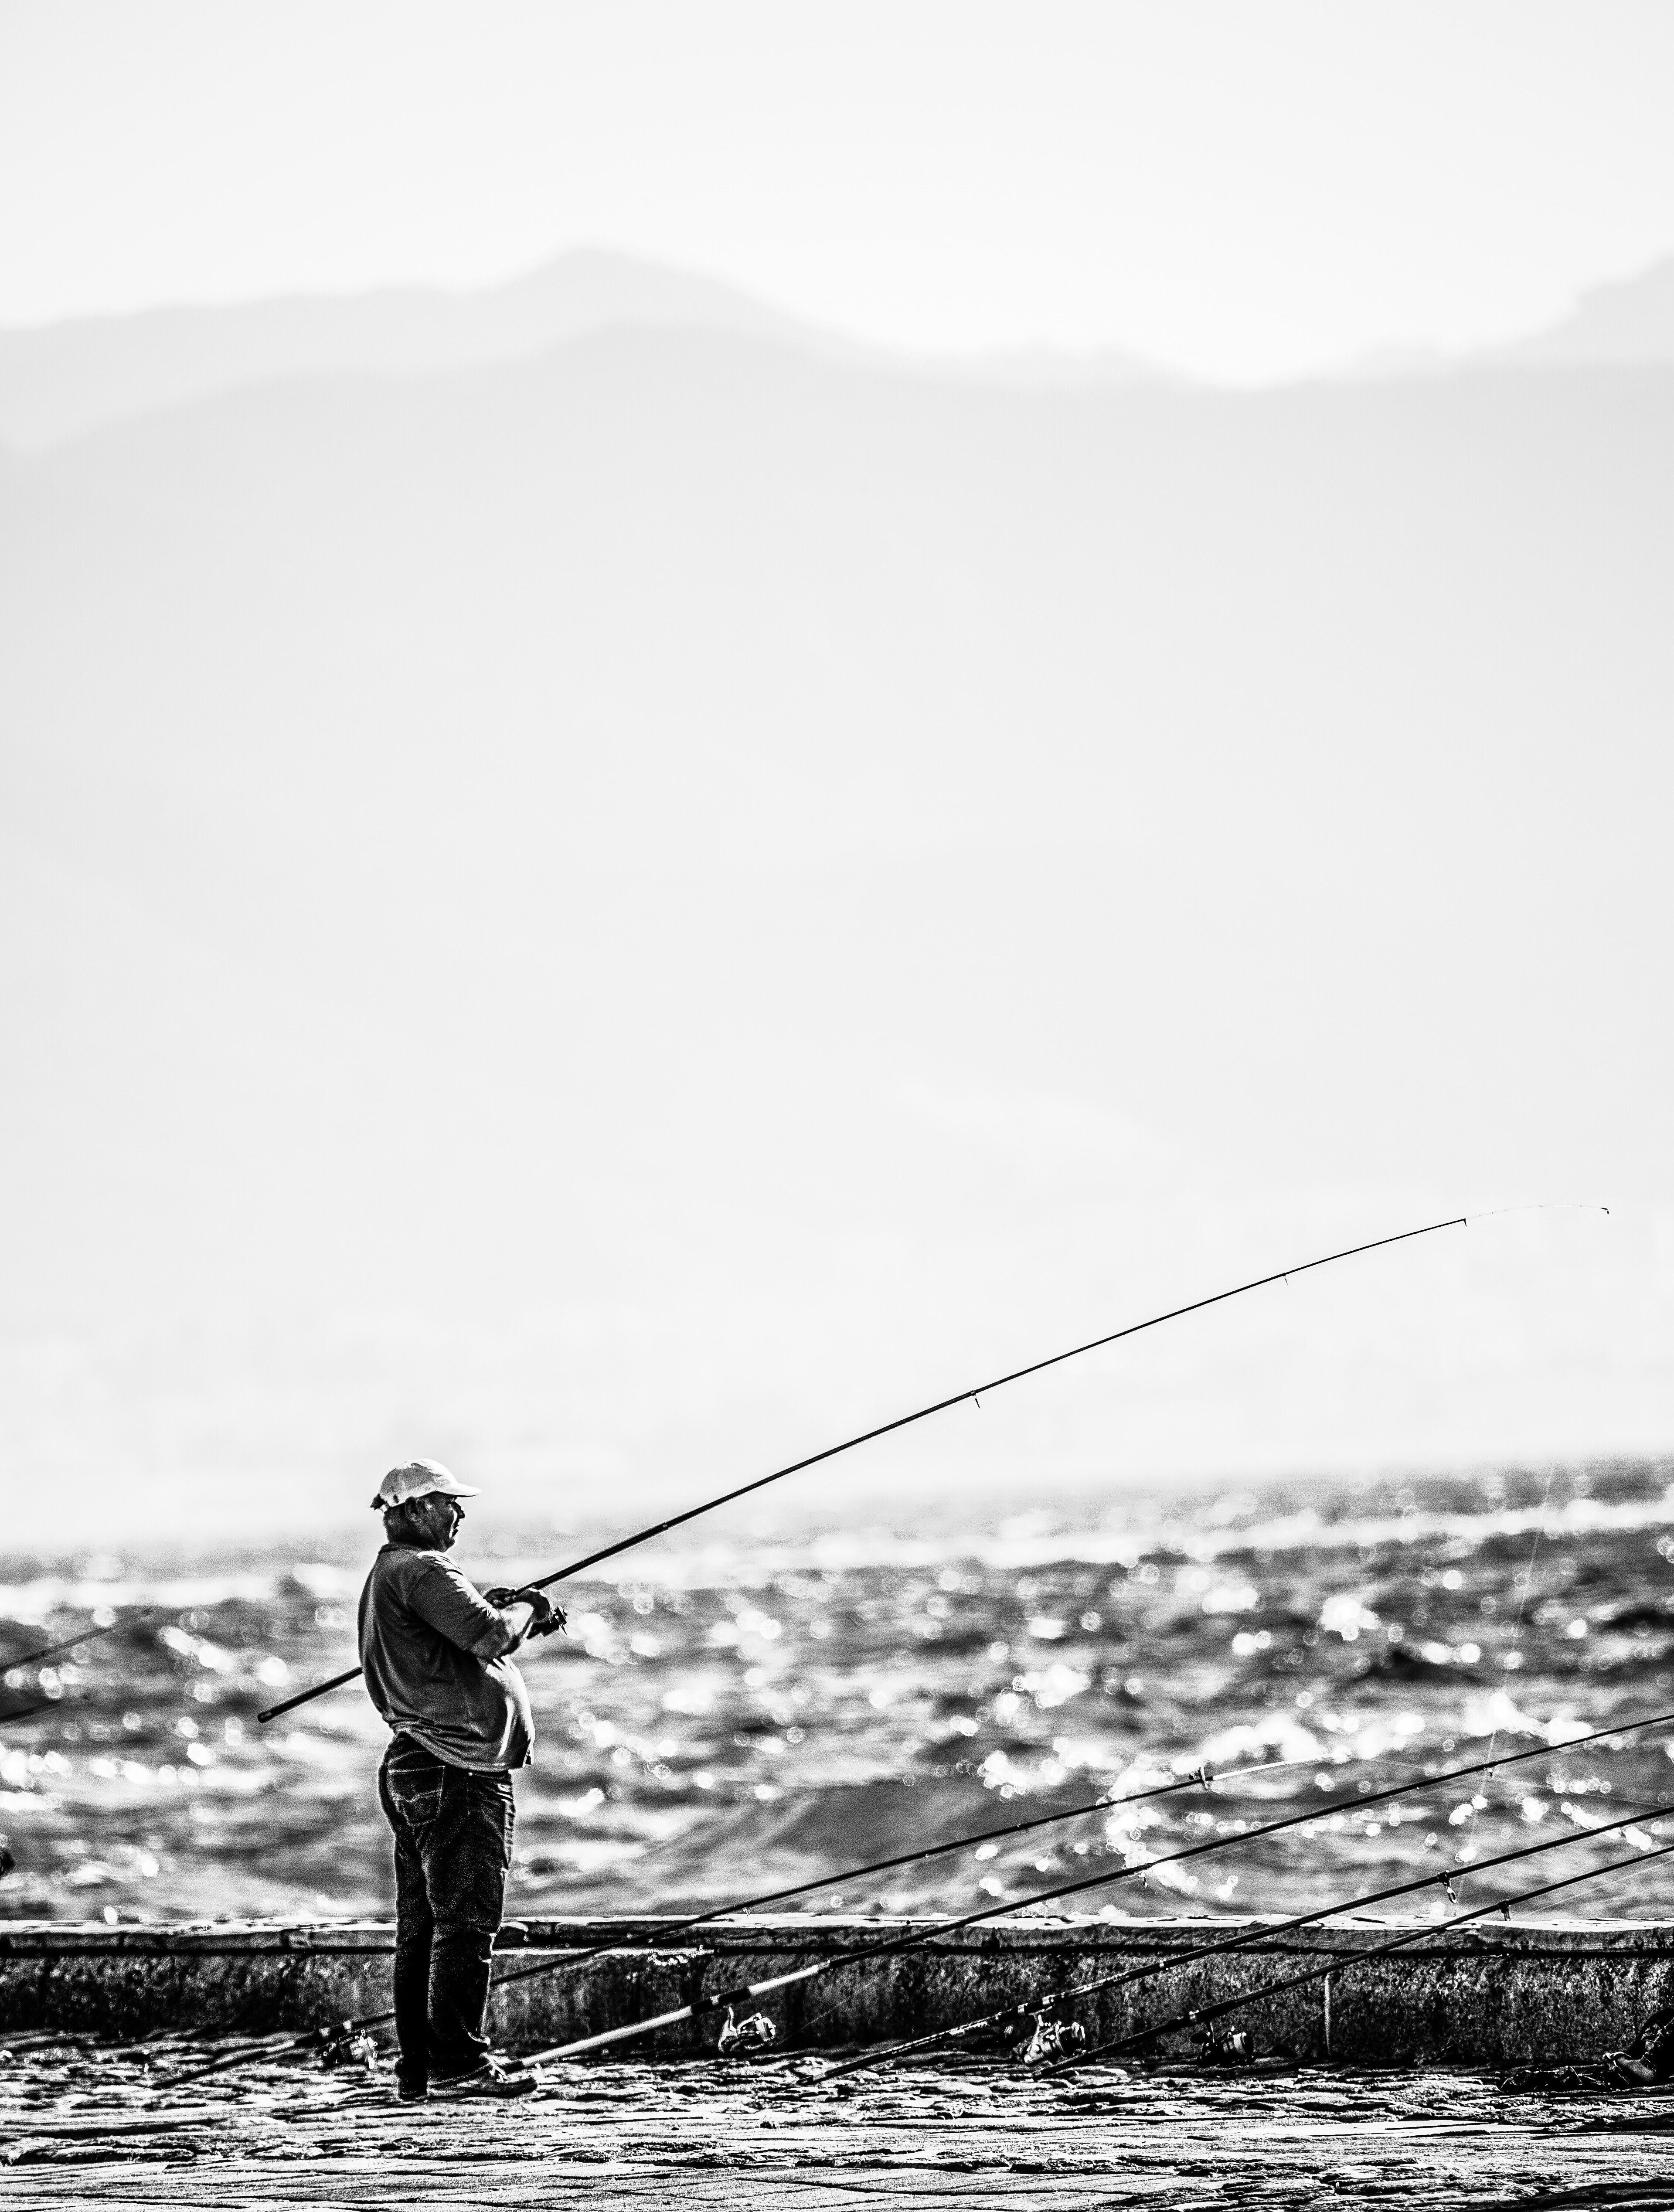 Man Standing Near Seashore Holding Fishing Rod on Grayscale Photography